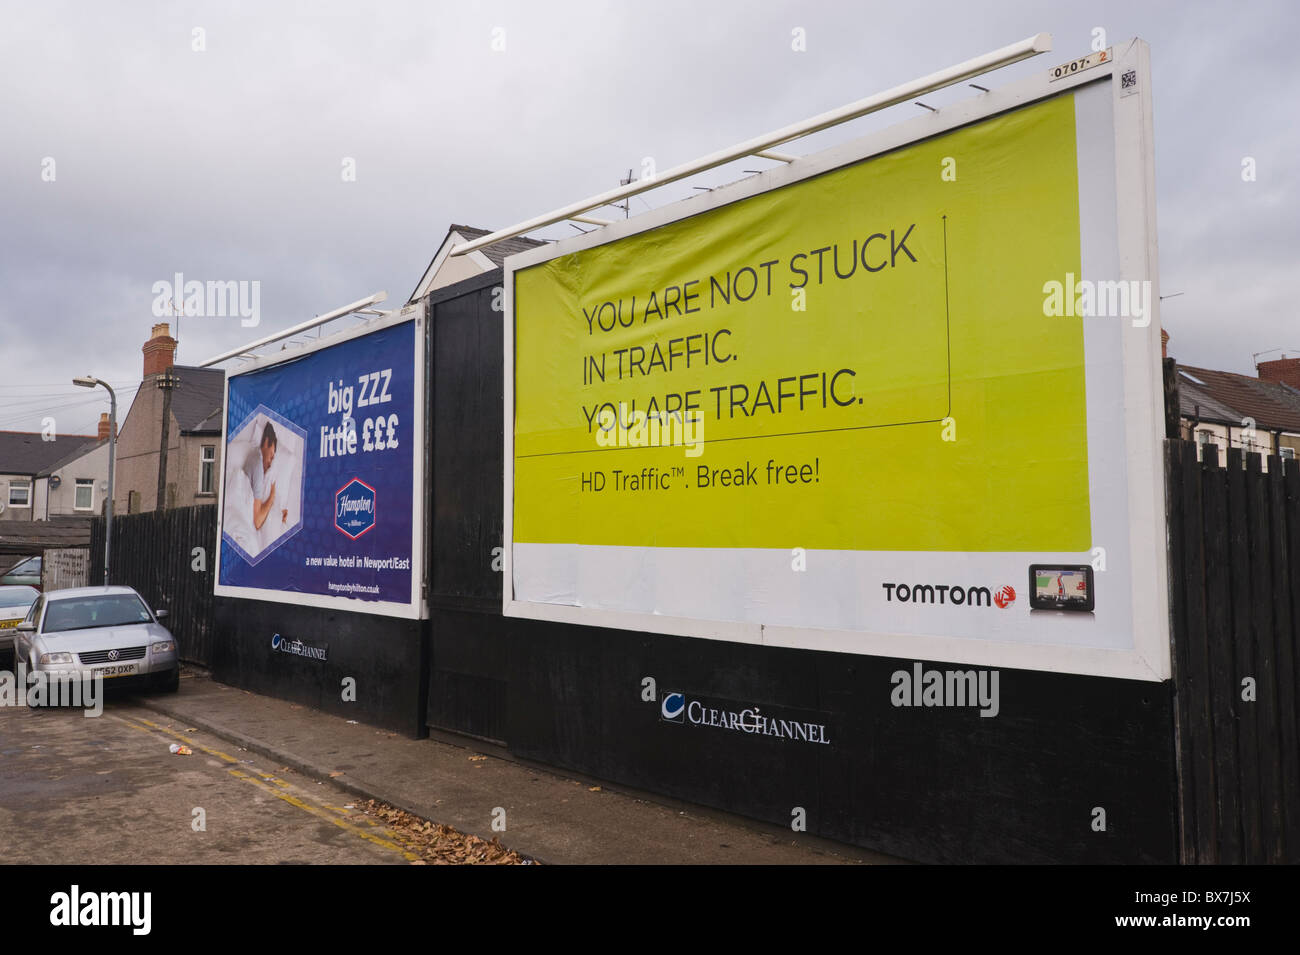 ClearChannel billboard site featuring advertising posters